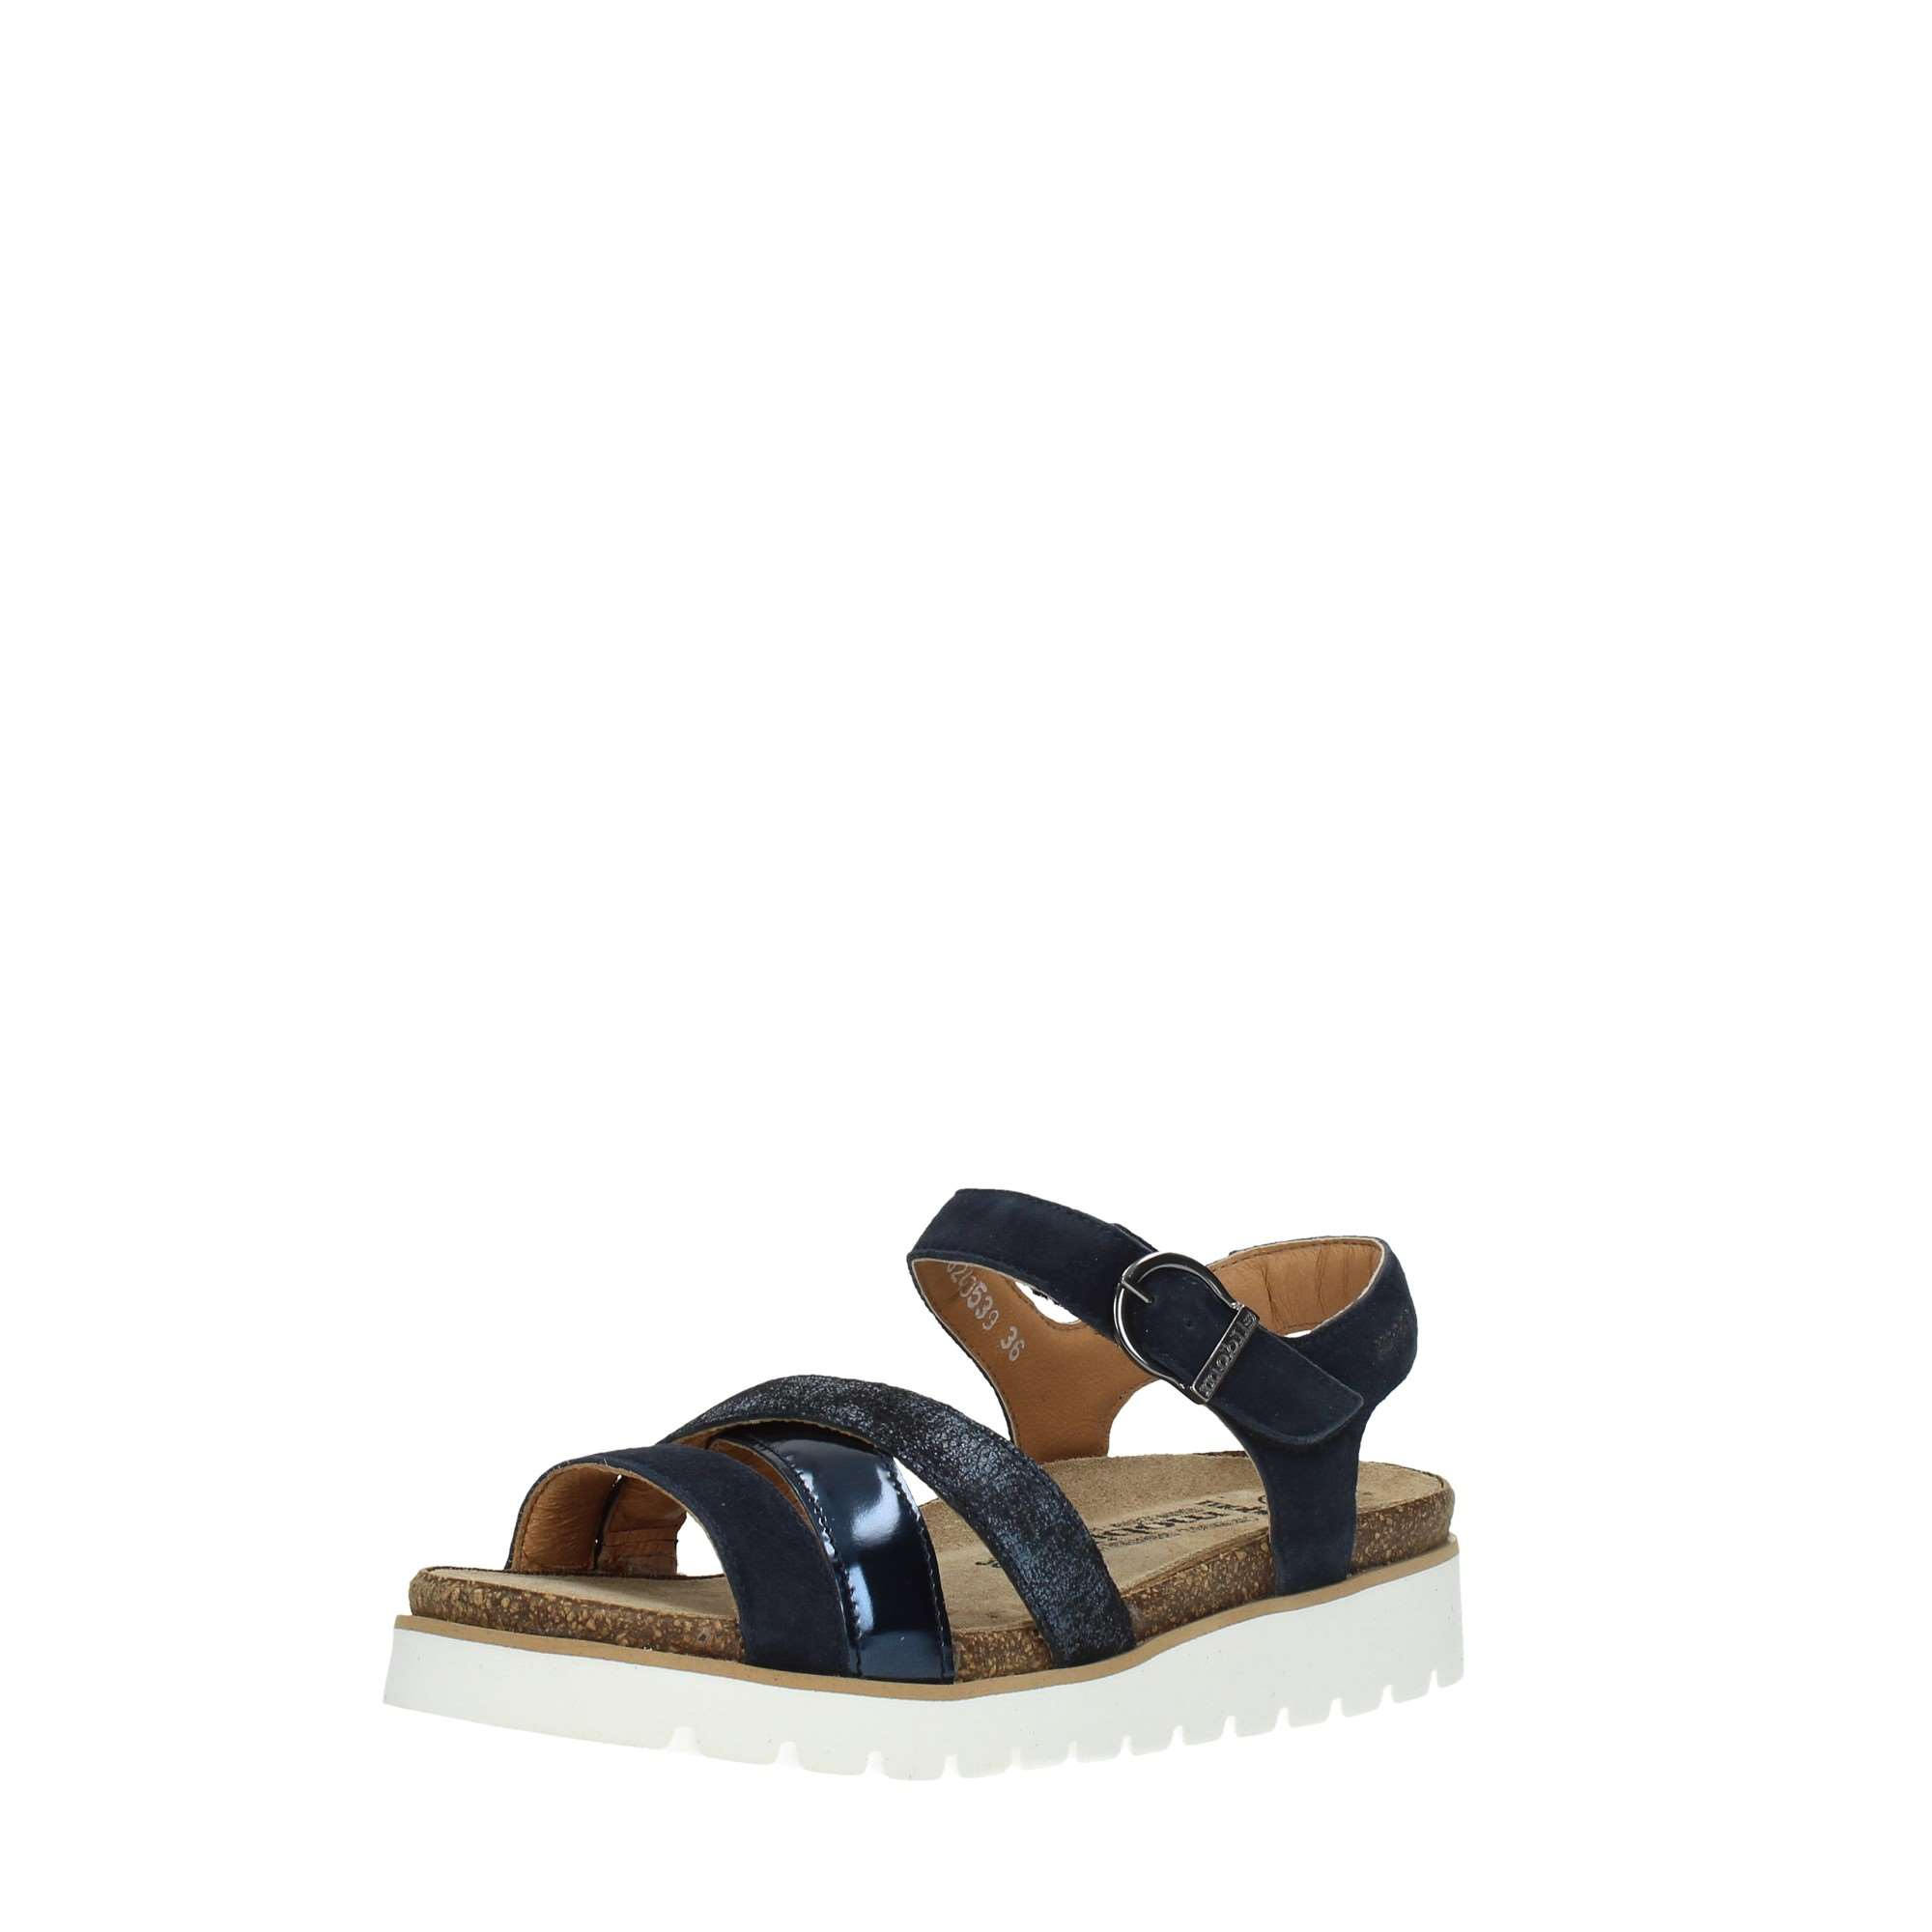 Mephisto Shoes Women Sandals Blue THINA